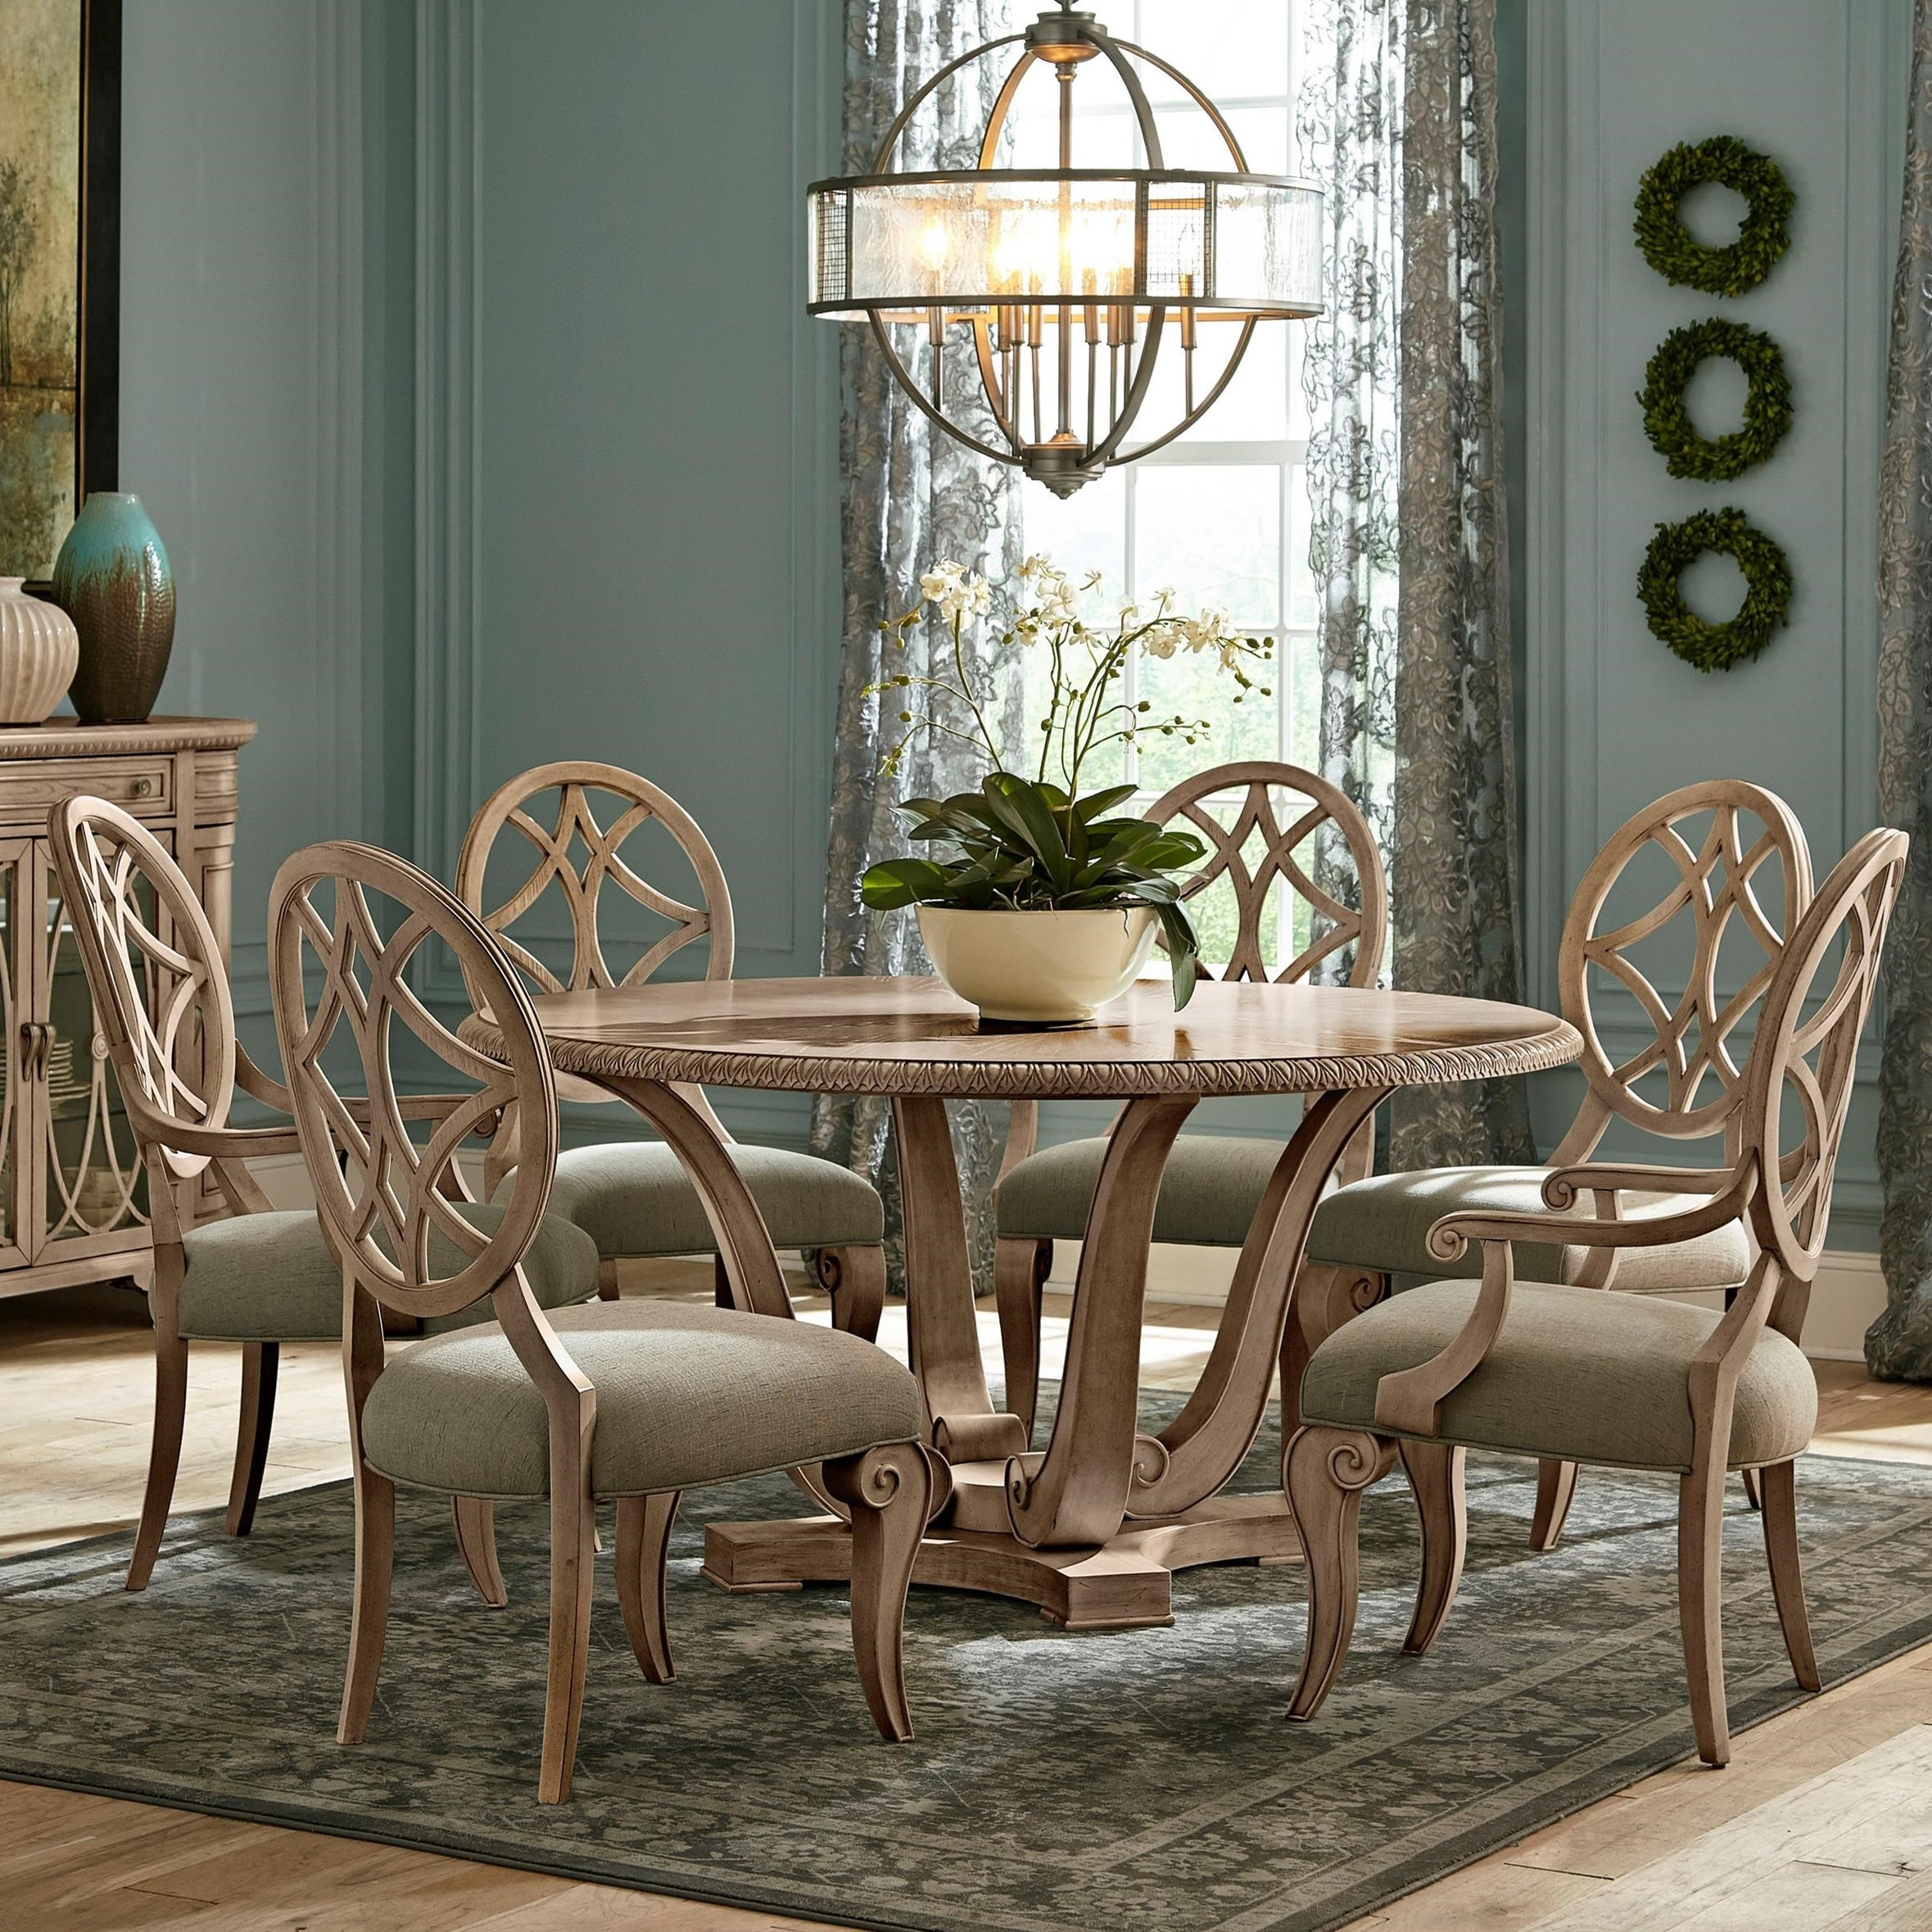 Smyrna 3 Piece Dining Sets For Well Known Trisha Yearwood Home Collectionklaussner Jasper County Seven (View 18 of 20)